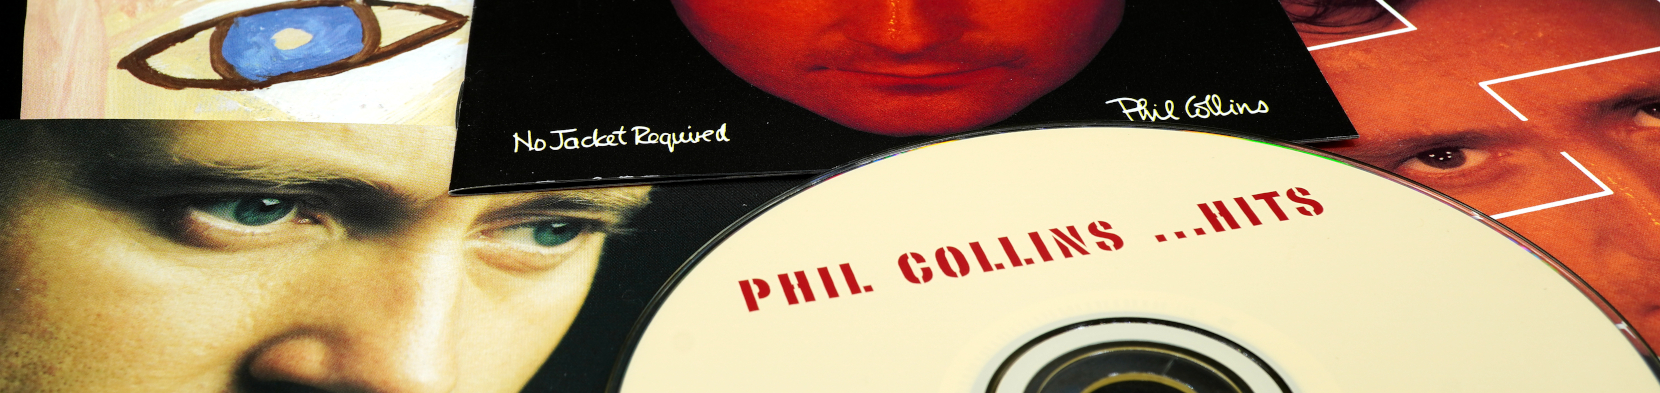 A collection of Phil Collins records